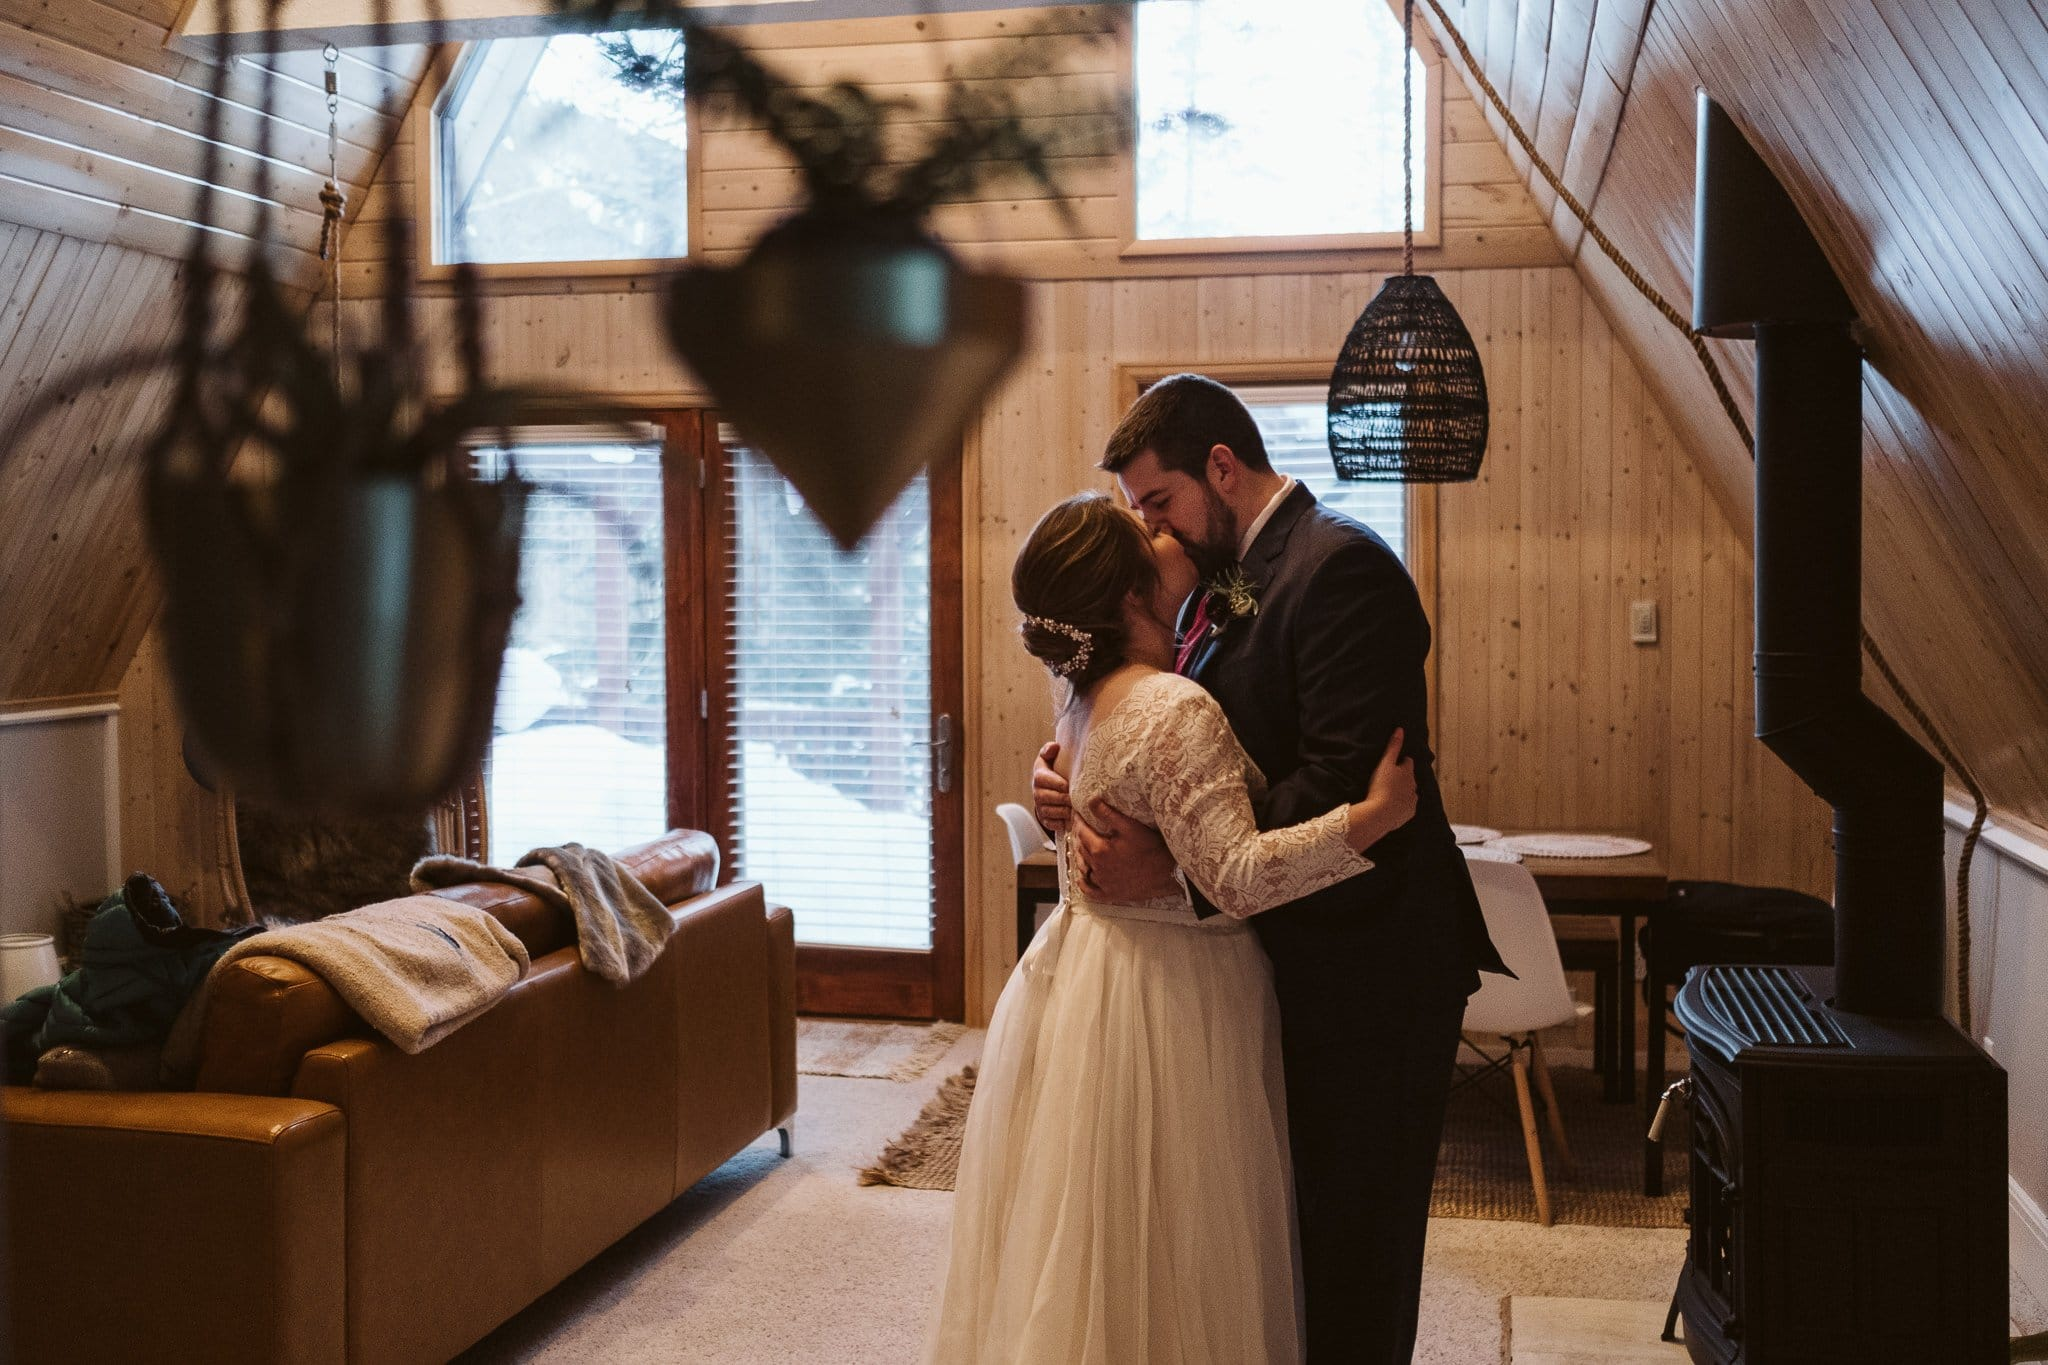 First dance in front of the fireplace at A-frame cabin in Colorado.